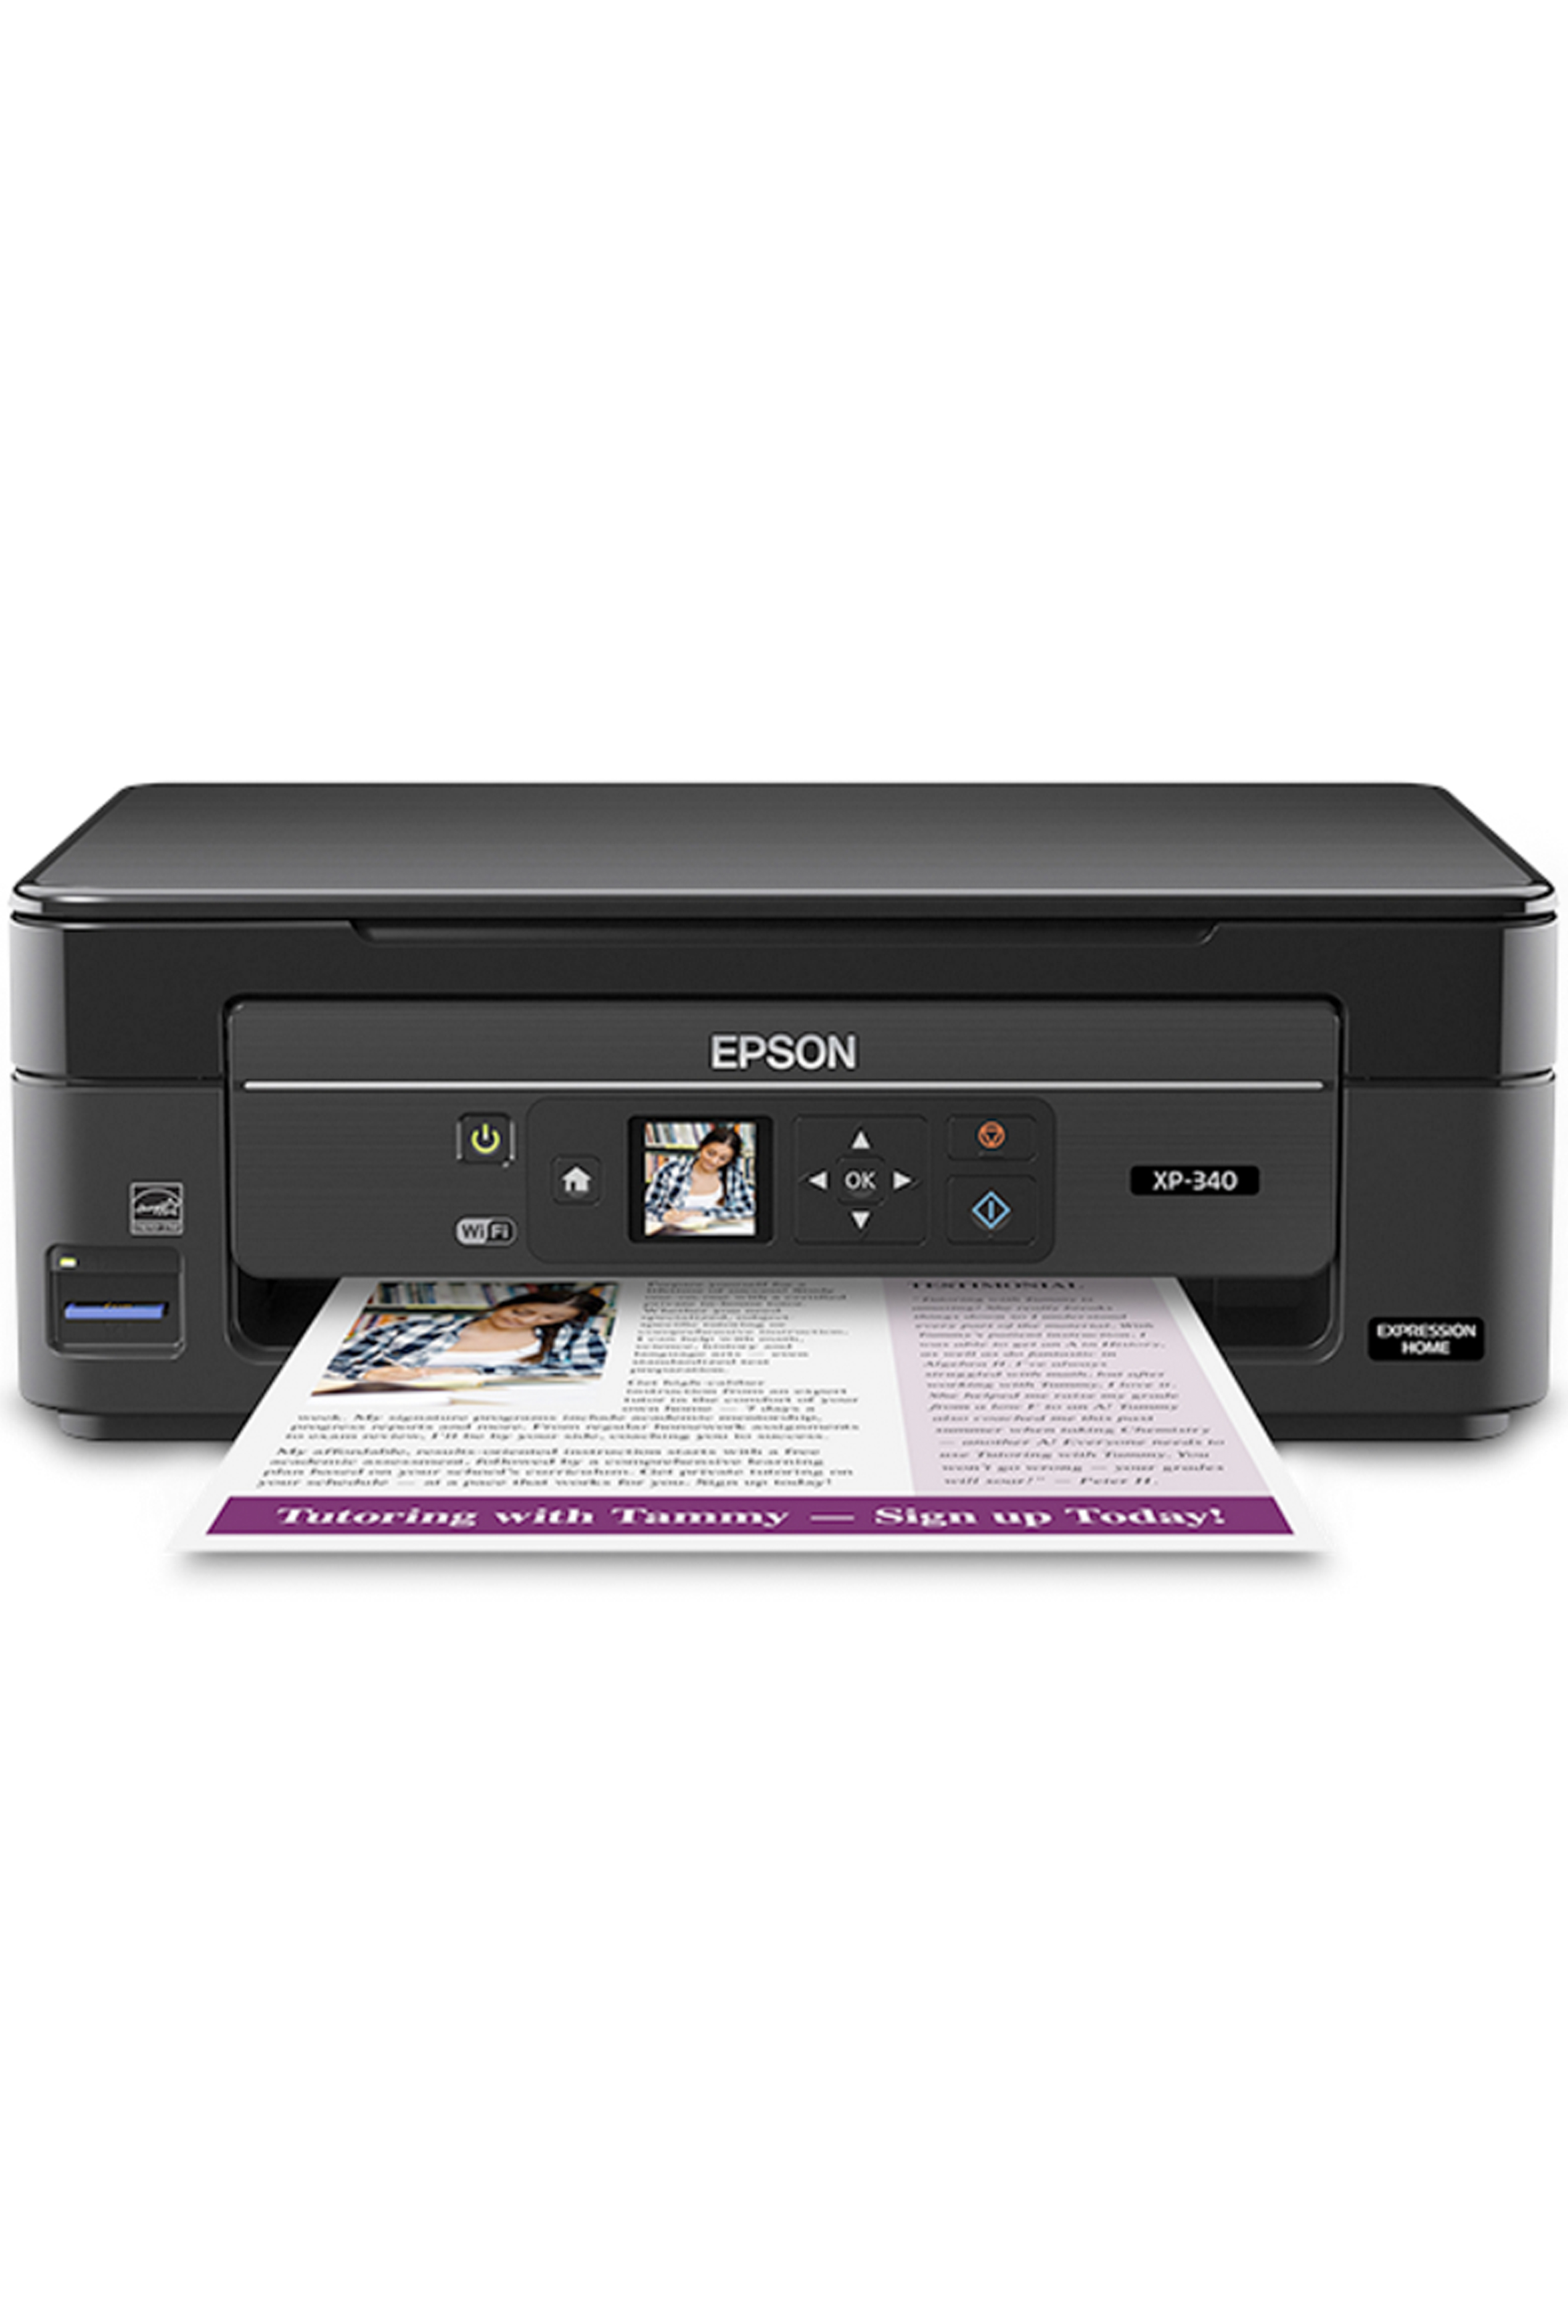 Epson Expression Home XP-340 Small-in-One All-in-One Printer...